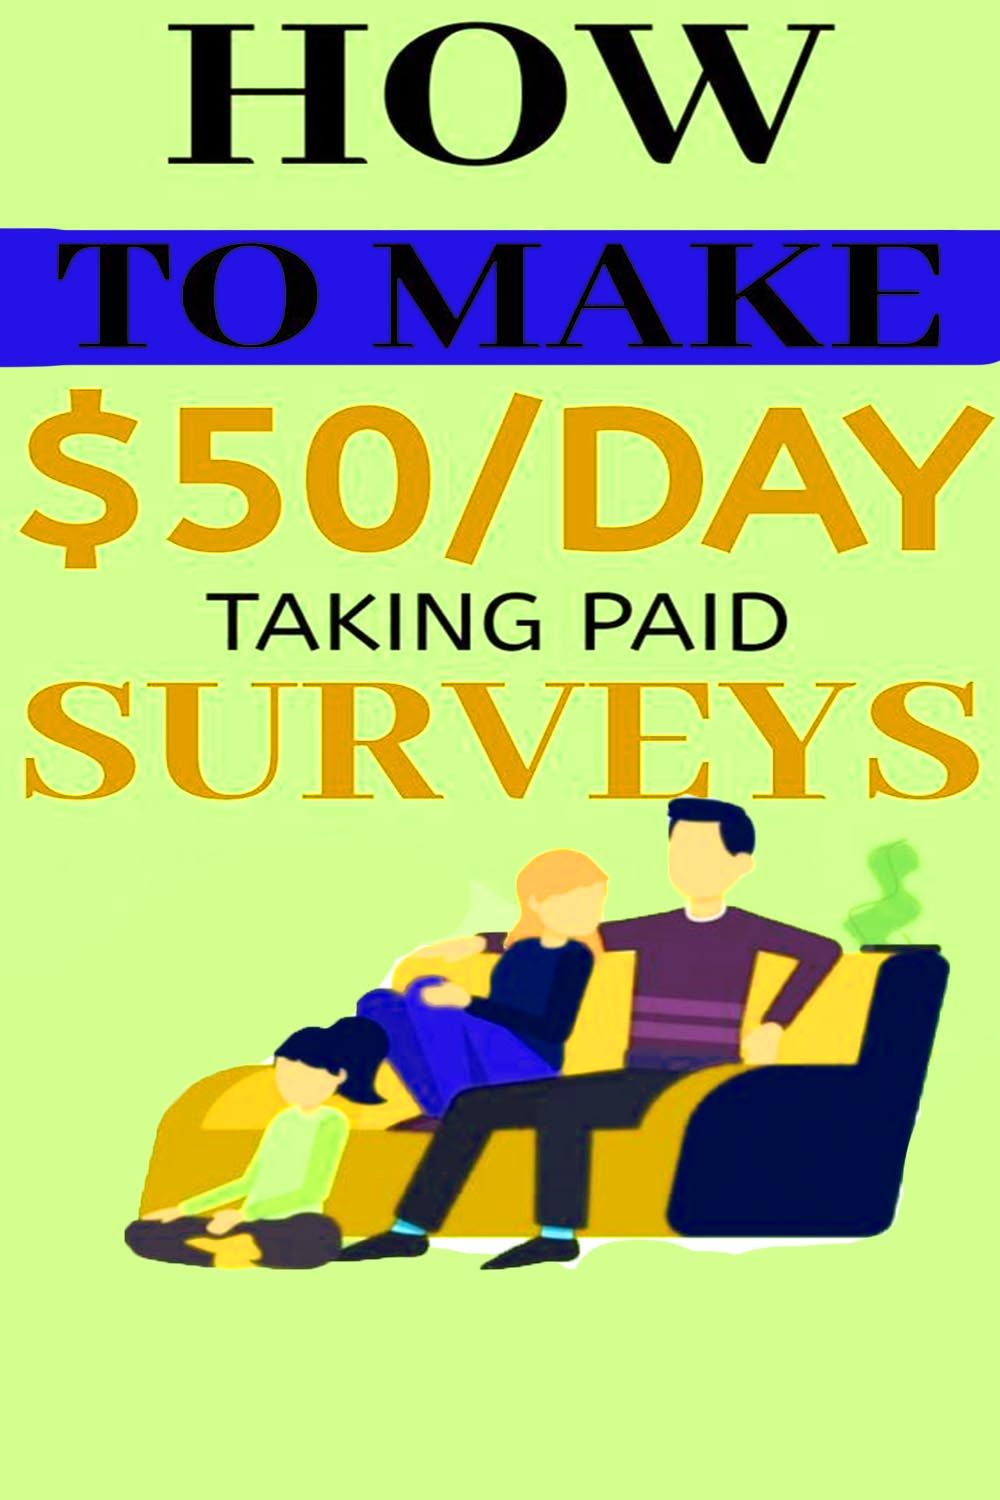 How to make $50/day taking paid surveys